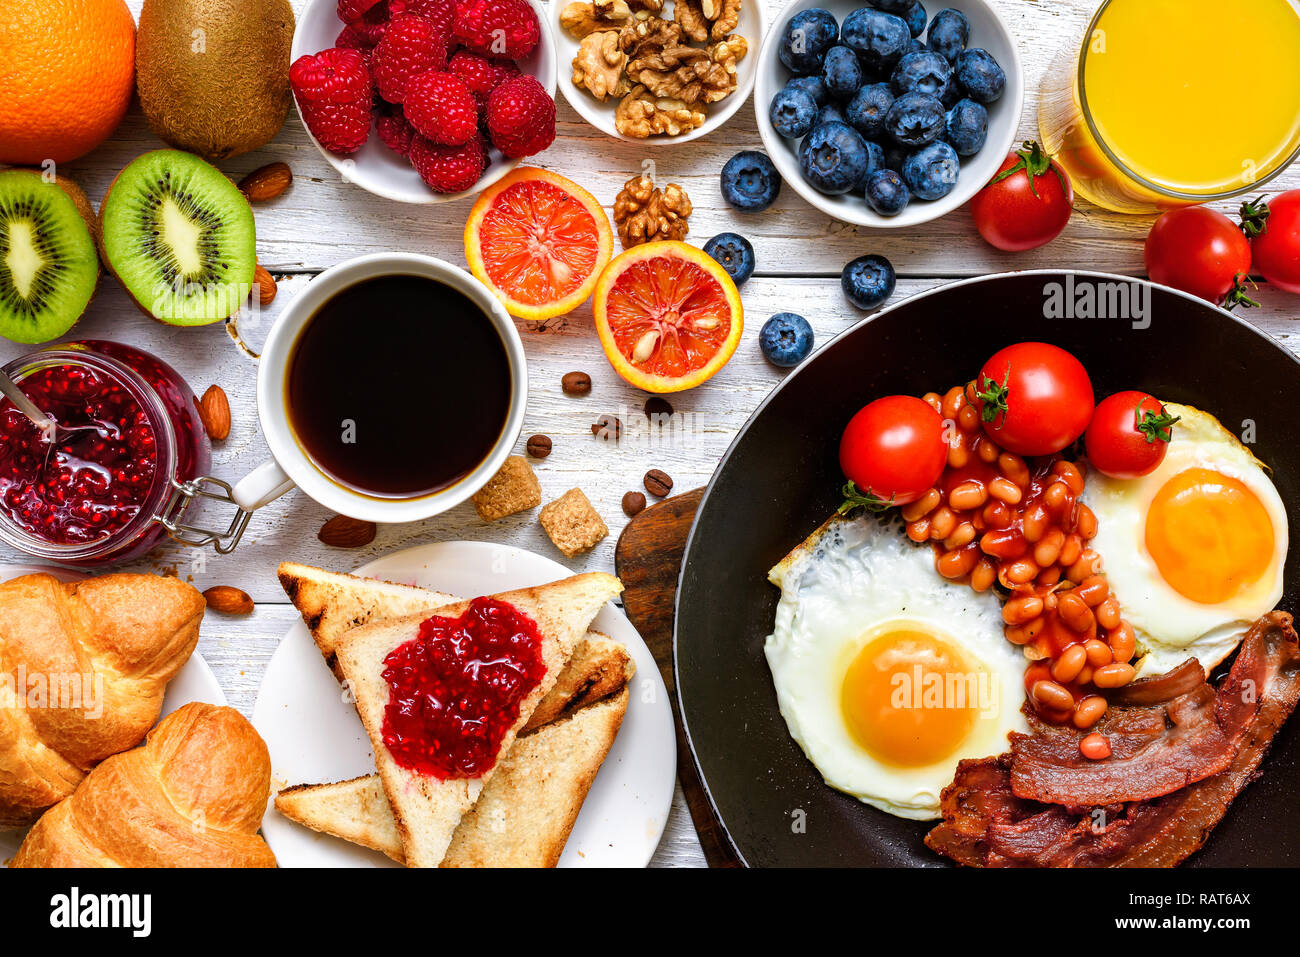 breakfast including coffee, fried egg, bacon, beans, toast, croissant, orange juice with fruits and berries. top view - Stock Image